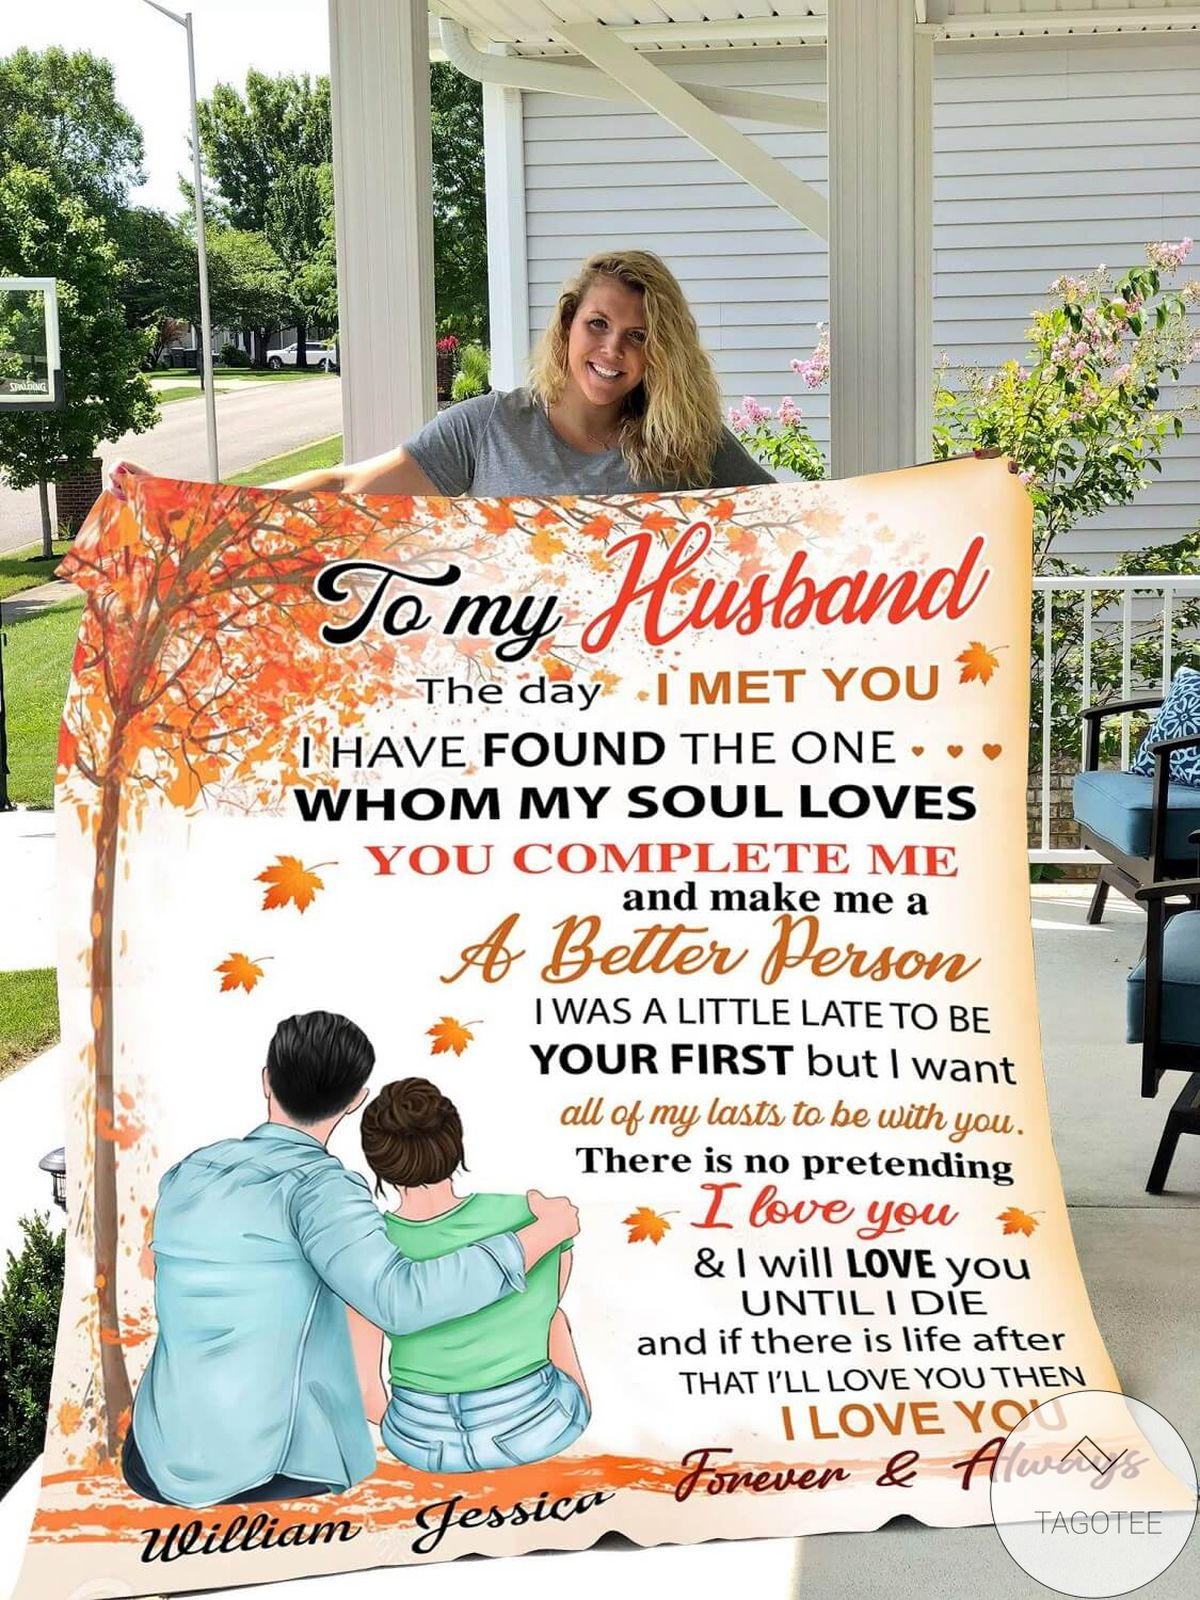 Absolutely Love Personalized To My Husband From Wife The Day I Met You Blanket